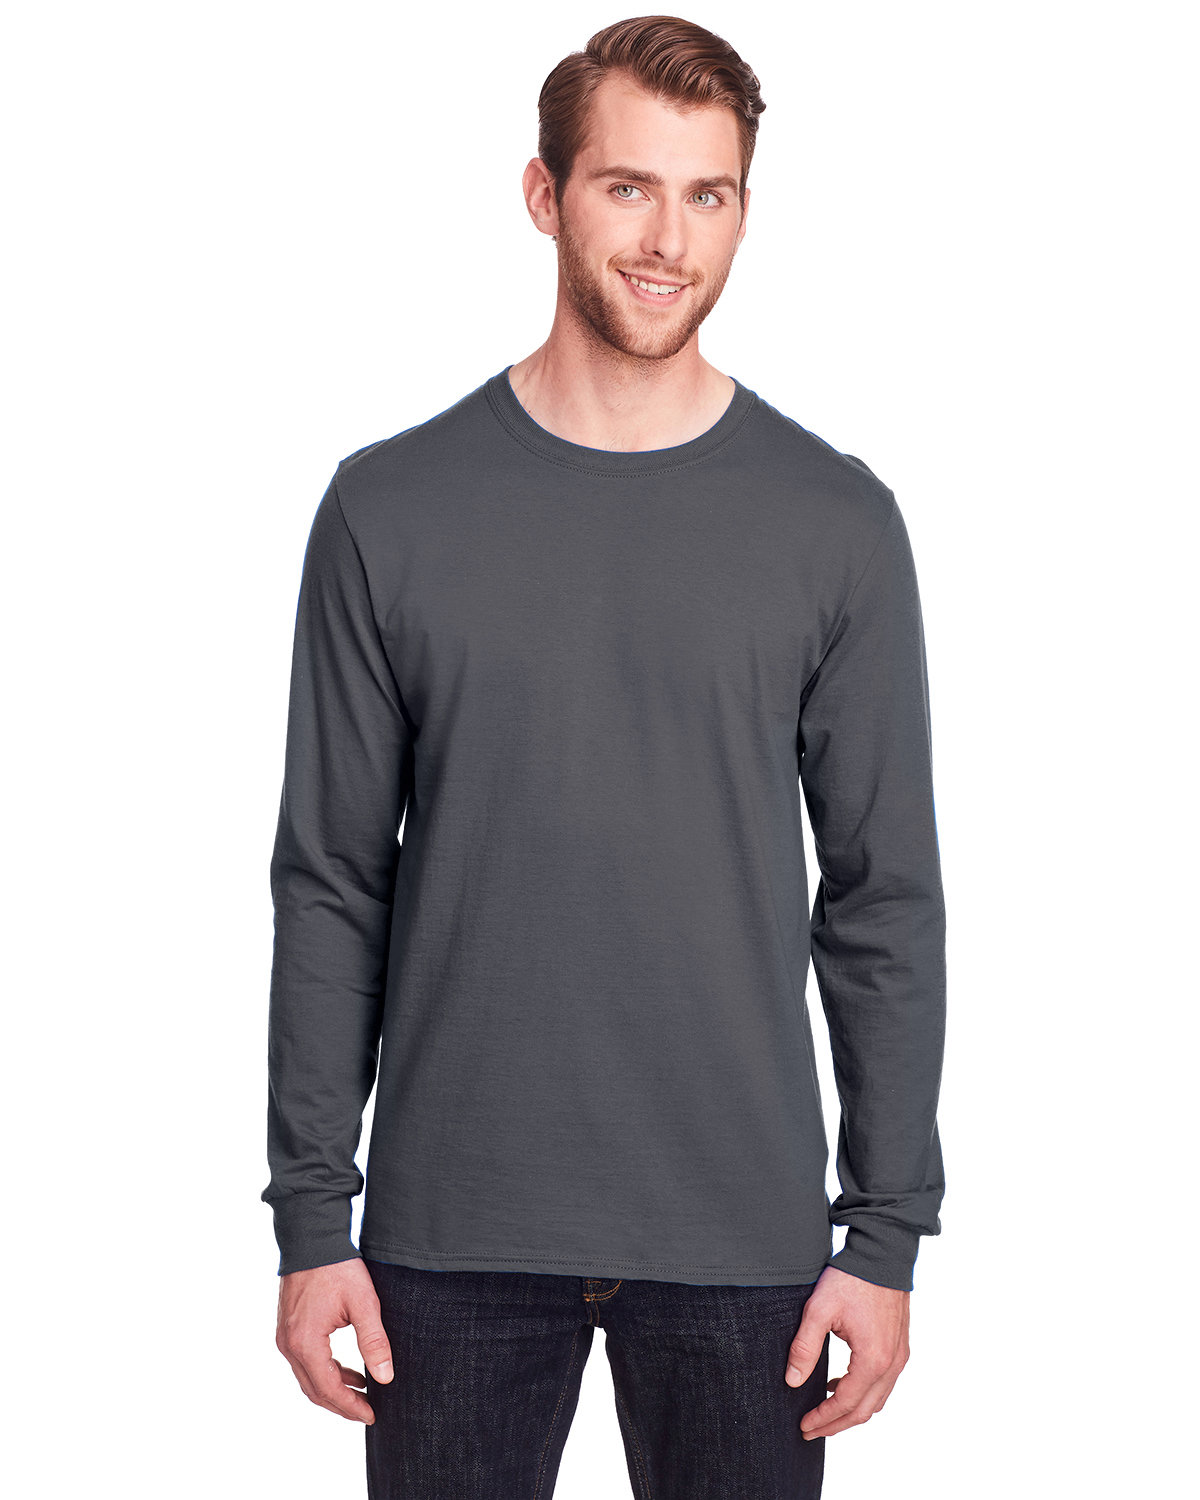 Fruit of the Loom Adult ICONIC™ Long Sleeve T-Shirt CHARCOAL GREY